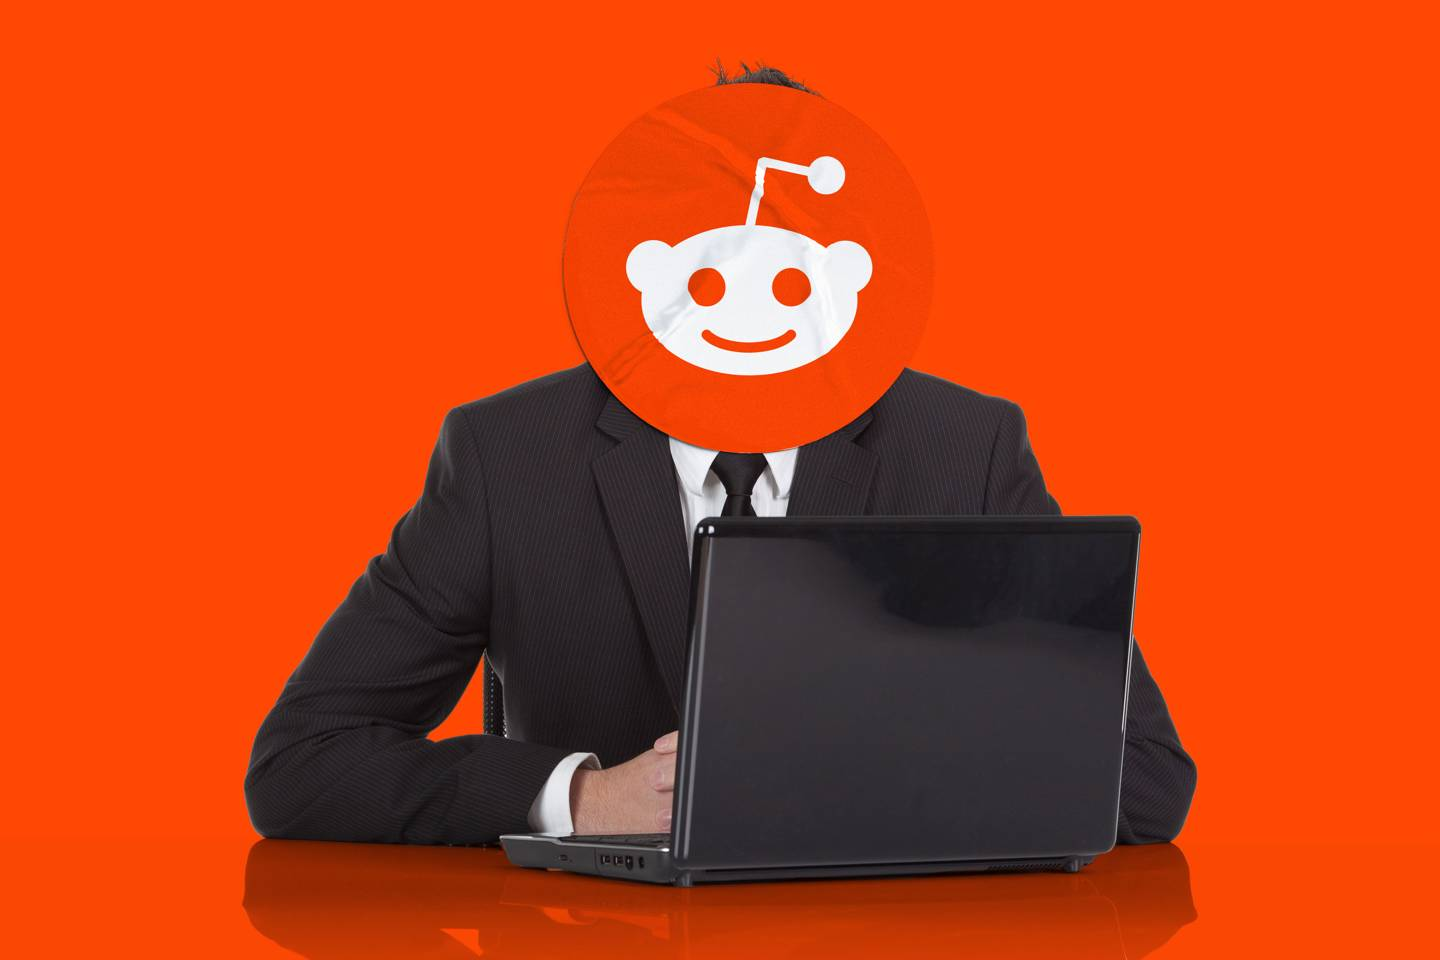 Reddit Bots Are Hunting Down Online Racists, One Post At A Time